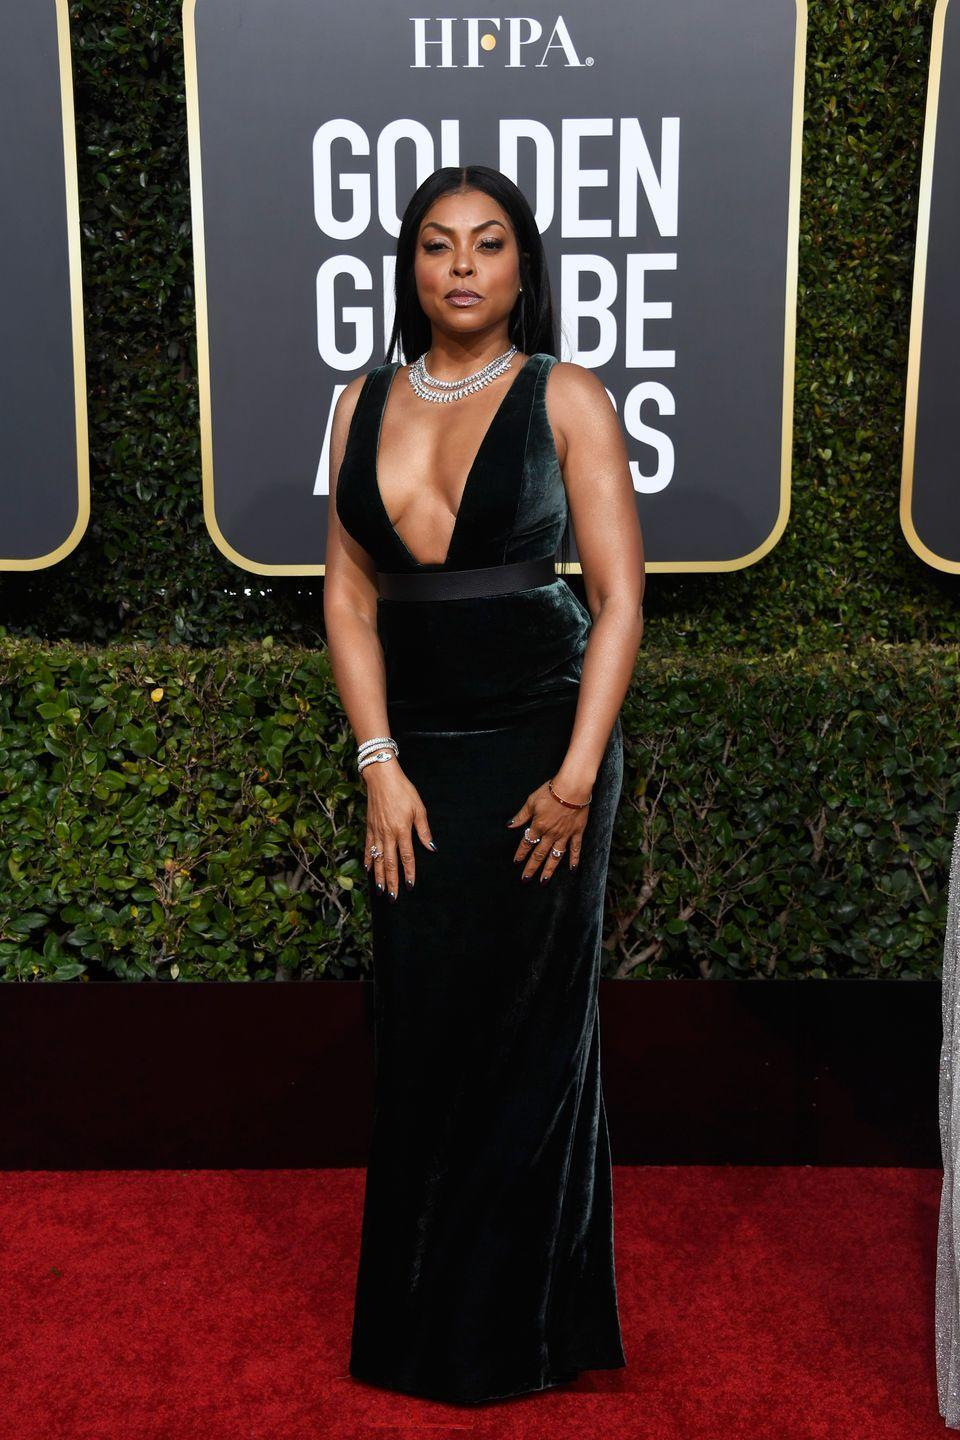 <p>The actress has never shied away from a form-hugging dress, and with a body like that, why should she? Her dark green velet gown by Vera Wang (her go-to) with ample décolletage was a head-turner. </p>